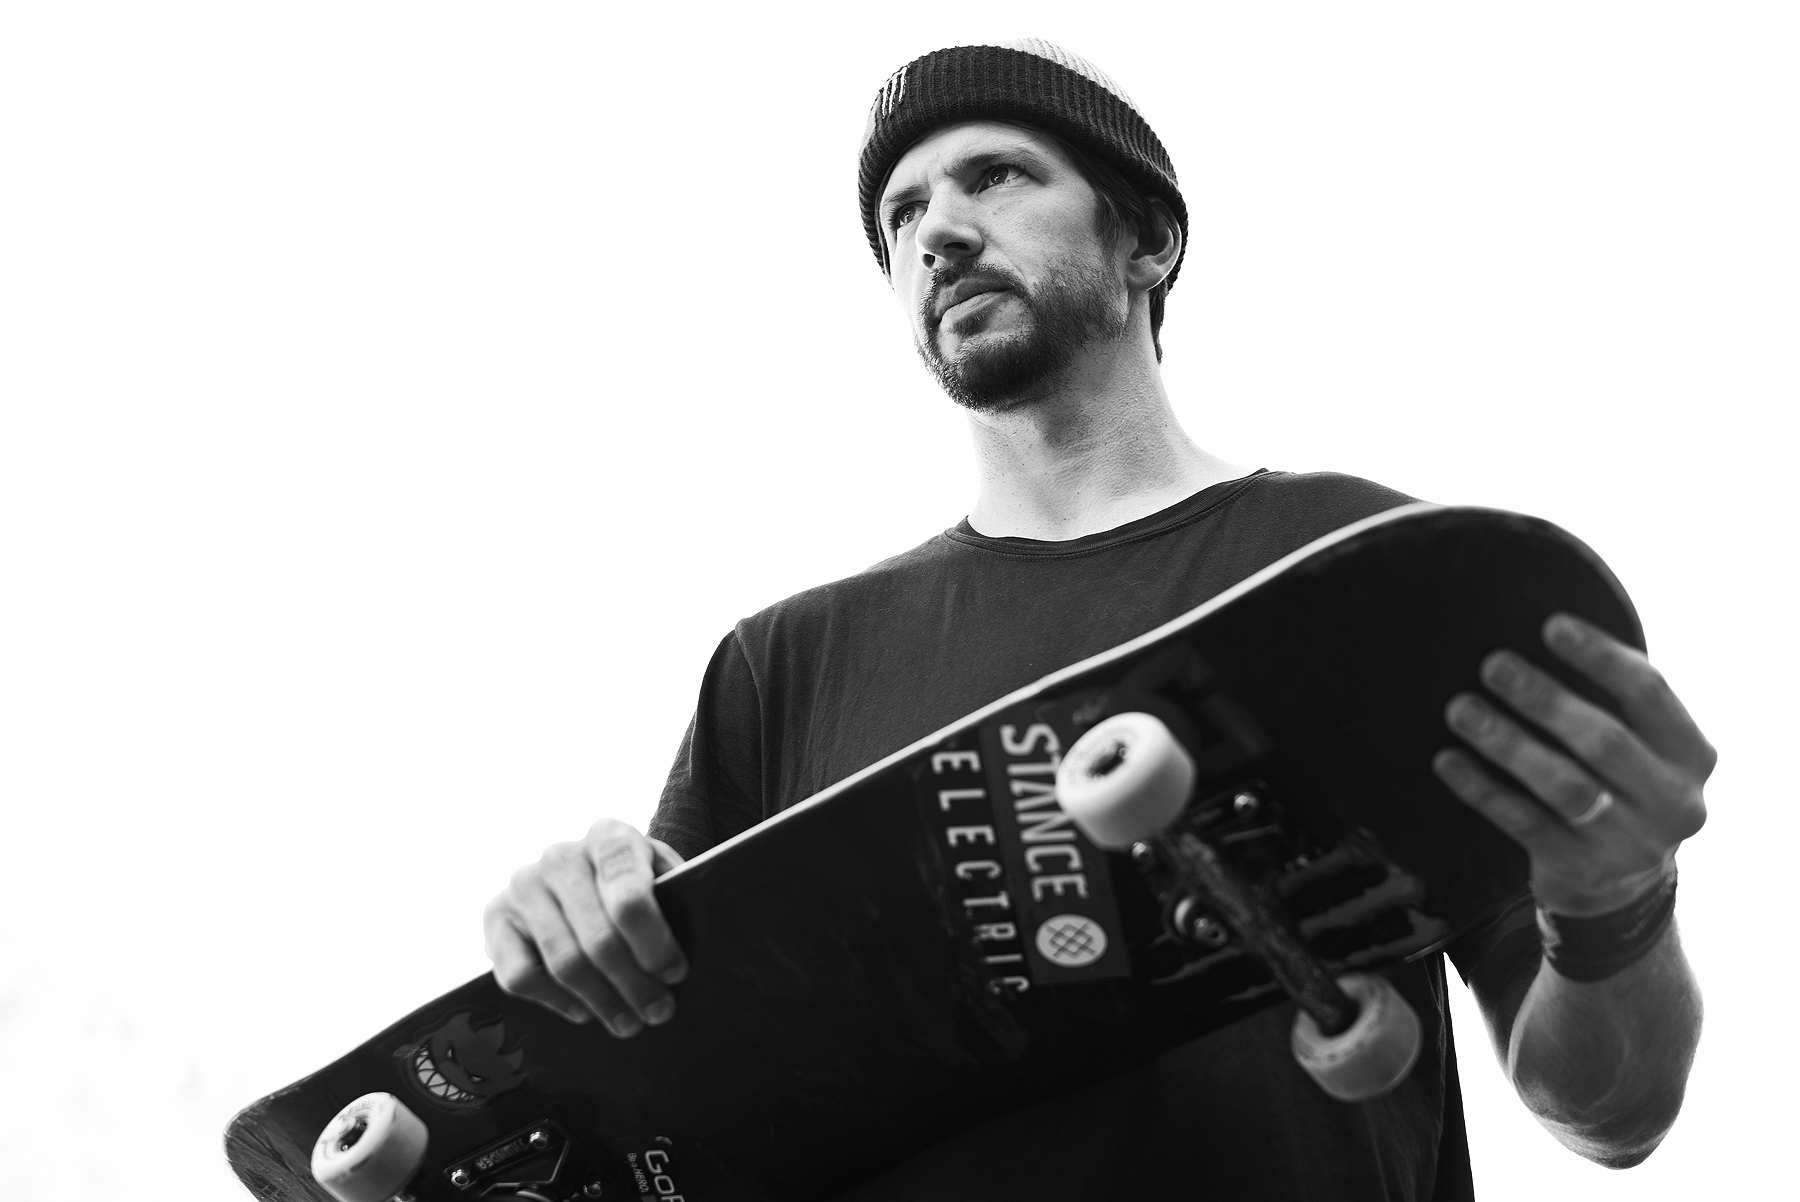 Chris Cole on $1 Million Skateboarding Bounties and Brawling in Russia